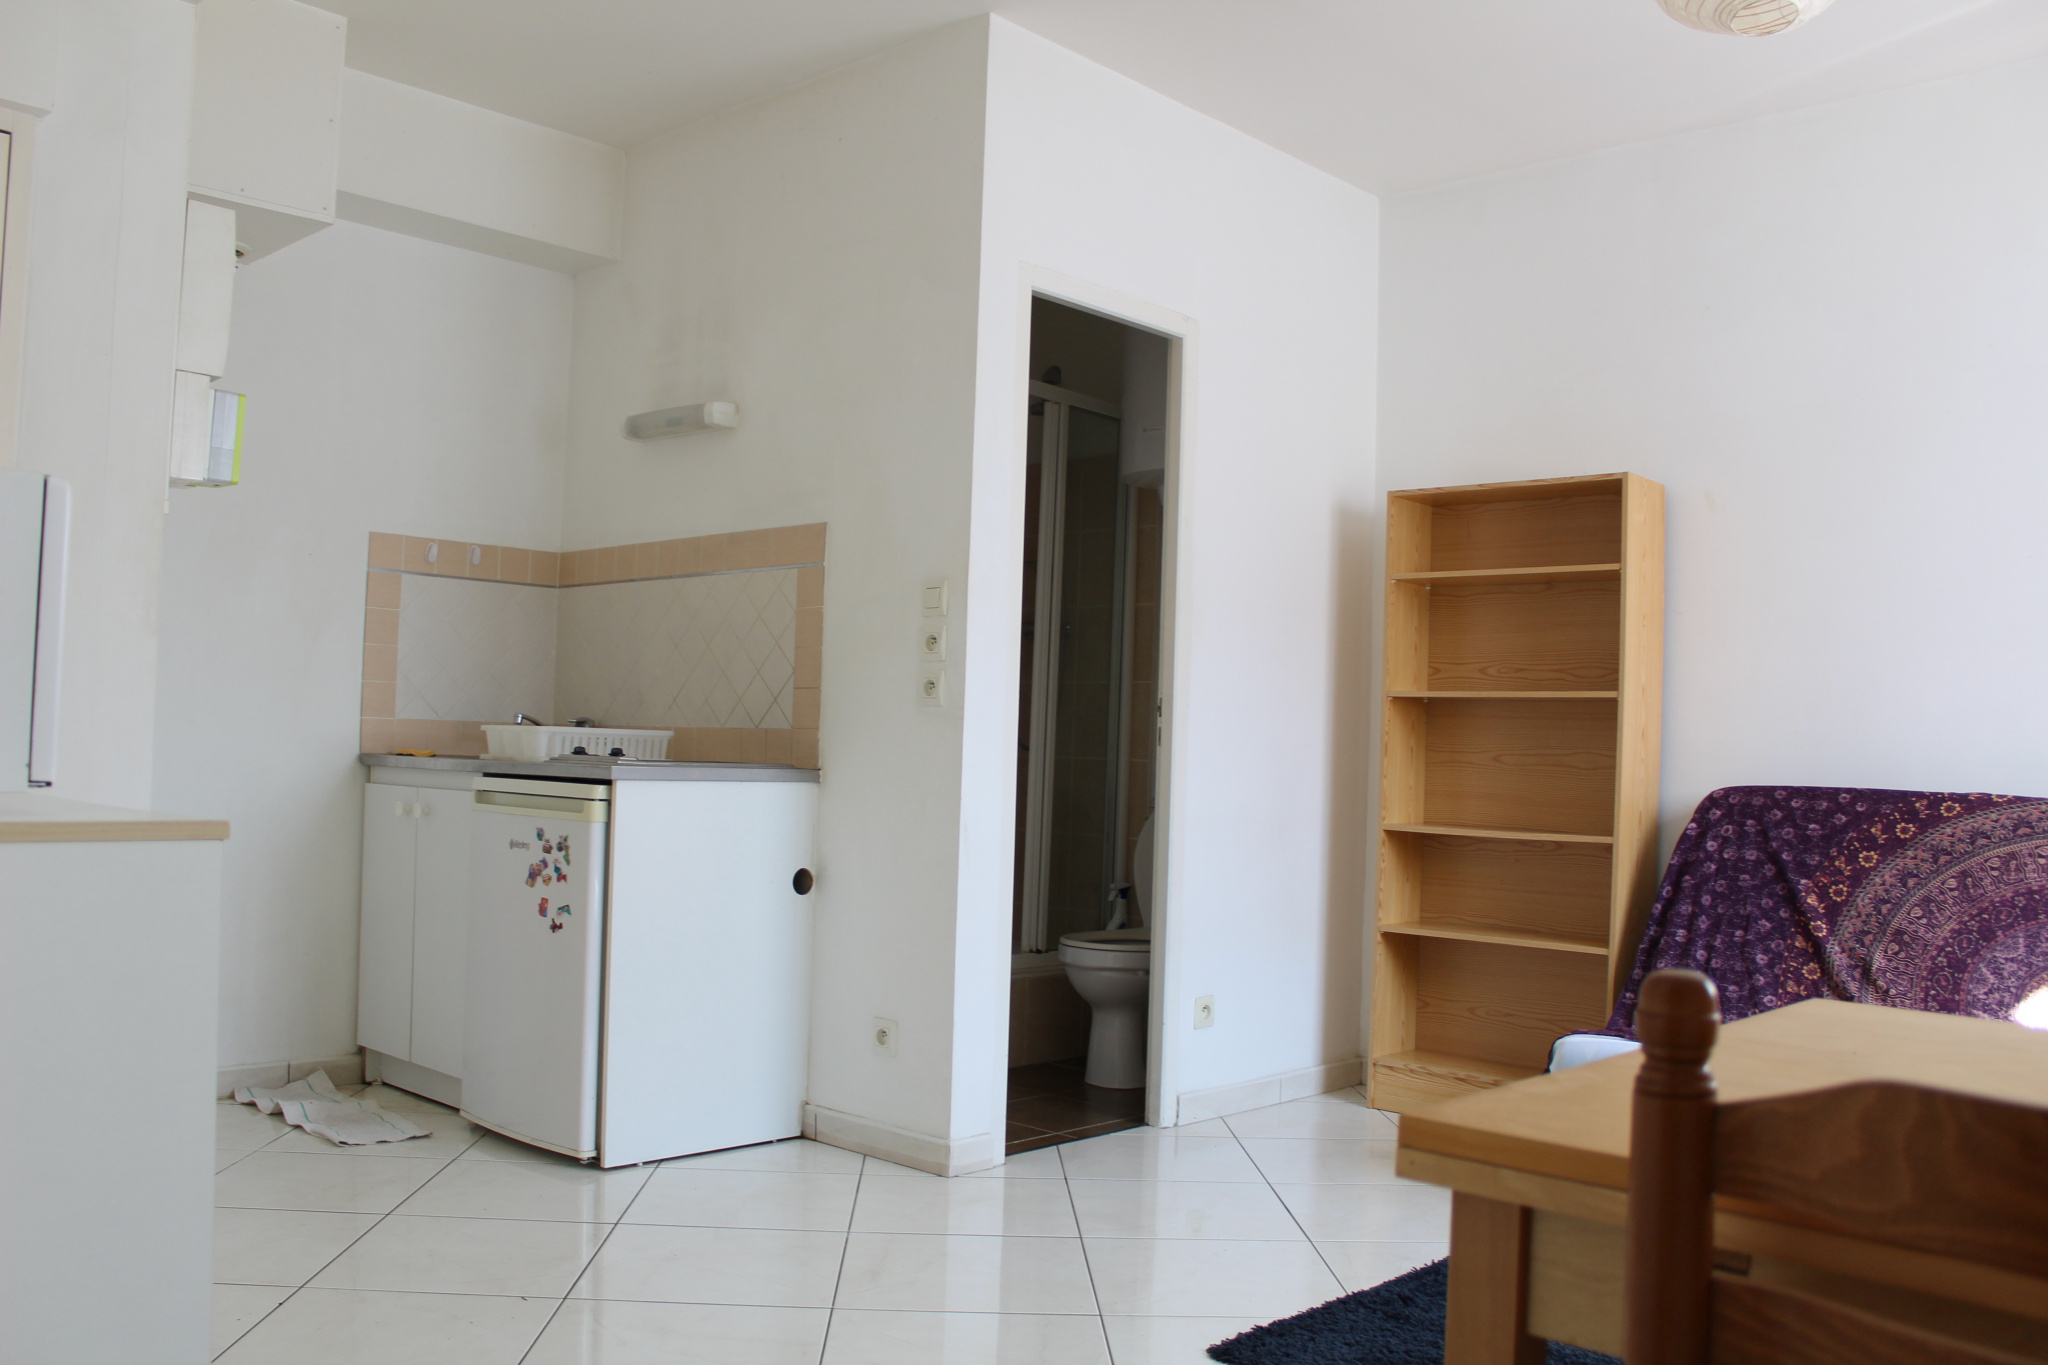 Vente appartement dijon UNIVERSITE - RUE D'AUXONNE - QUARTIER COLOMBIERE